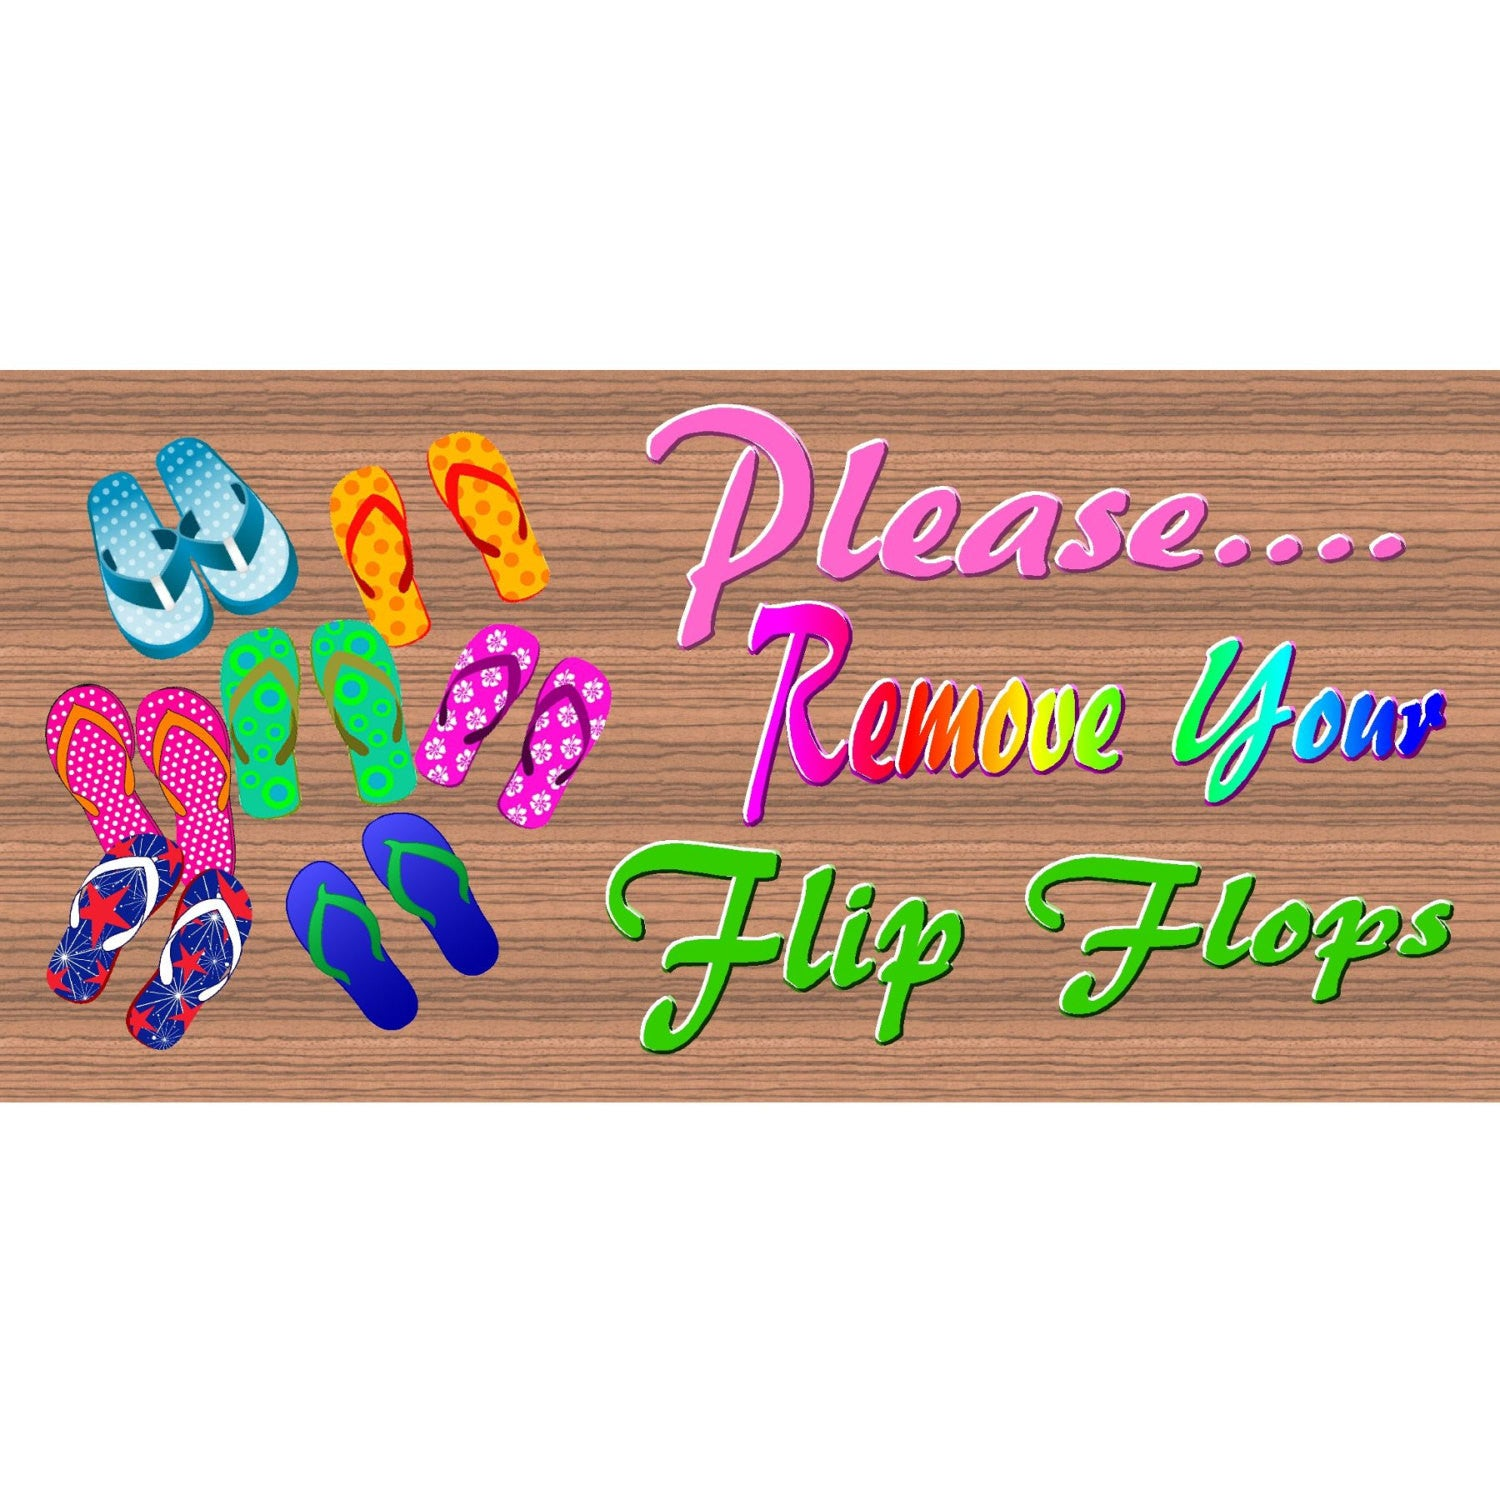 Flip flop Wood Signs - GS 1795 - Flip Flop Plaque